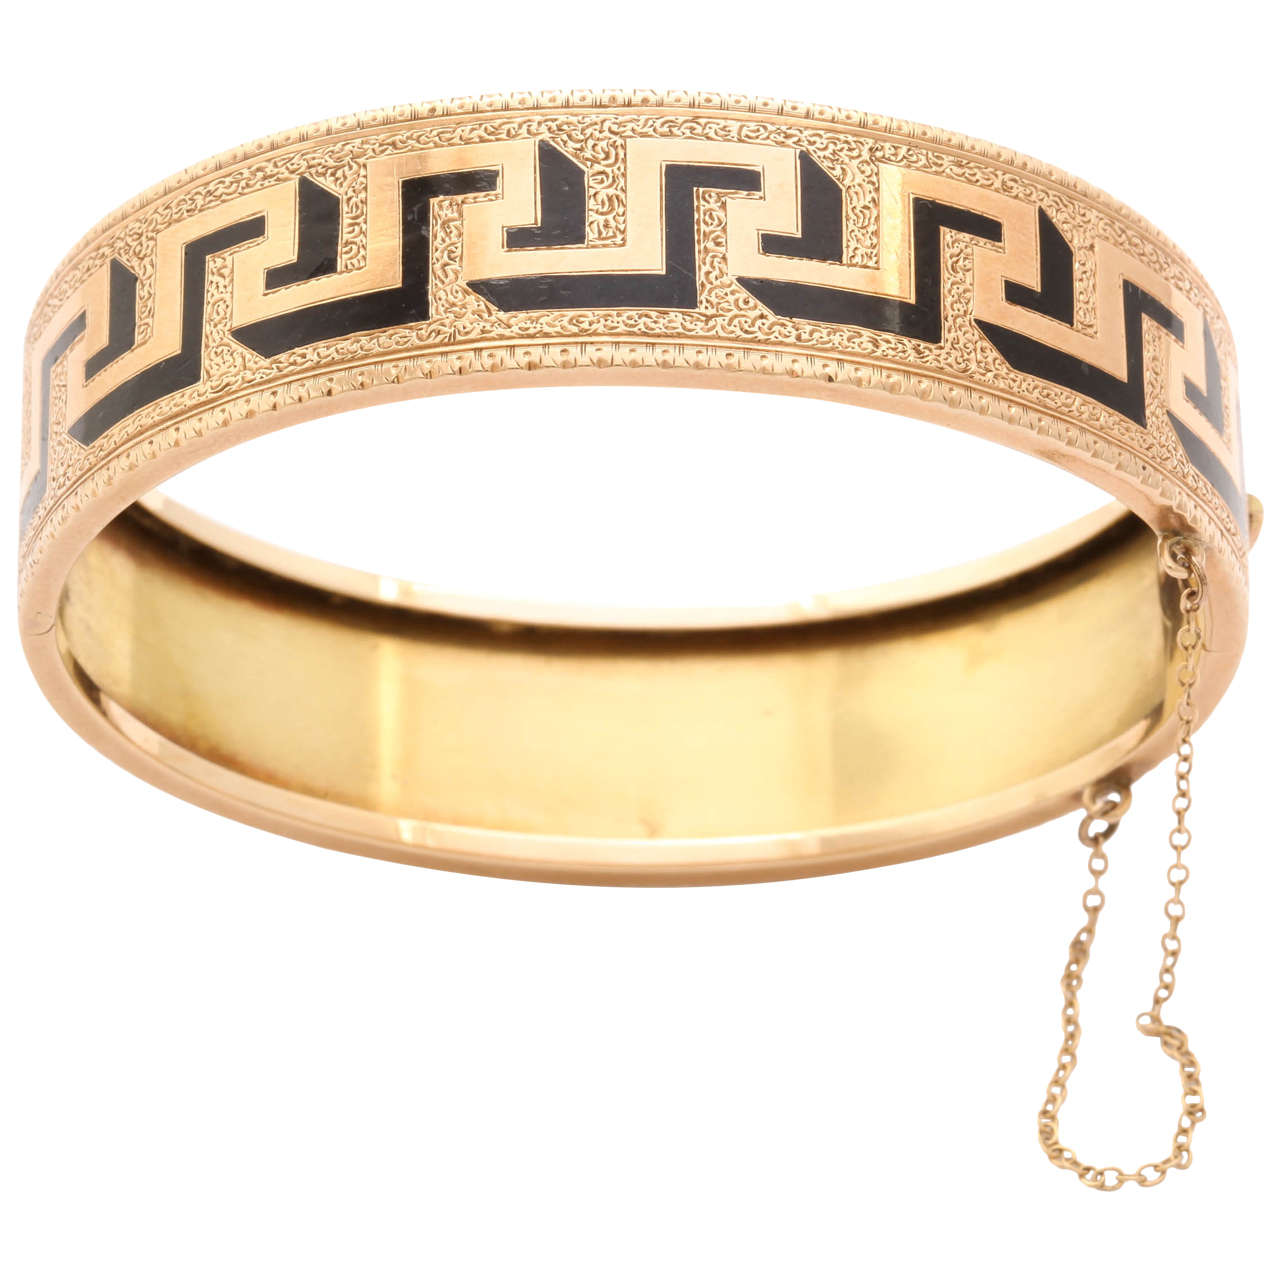 Victorian Greek Key Pattern Enamel Gold Bangle